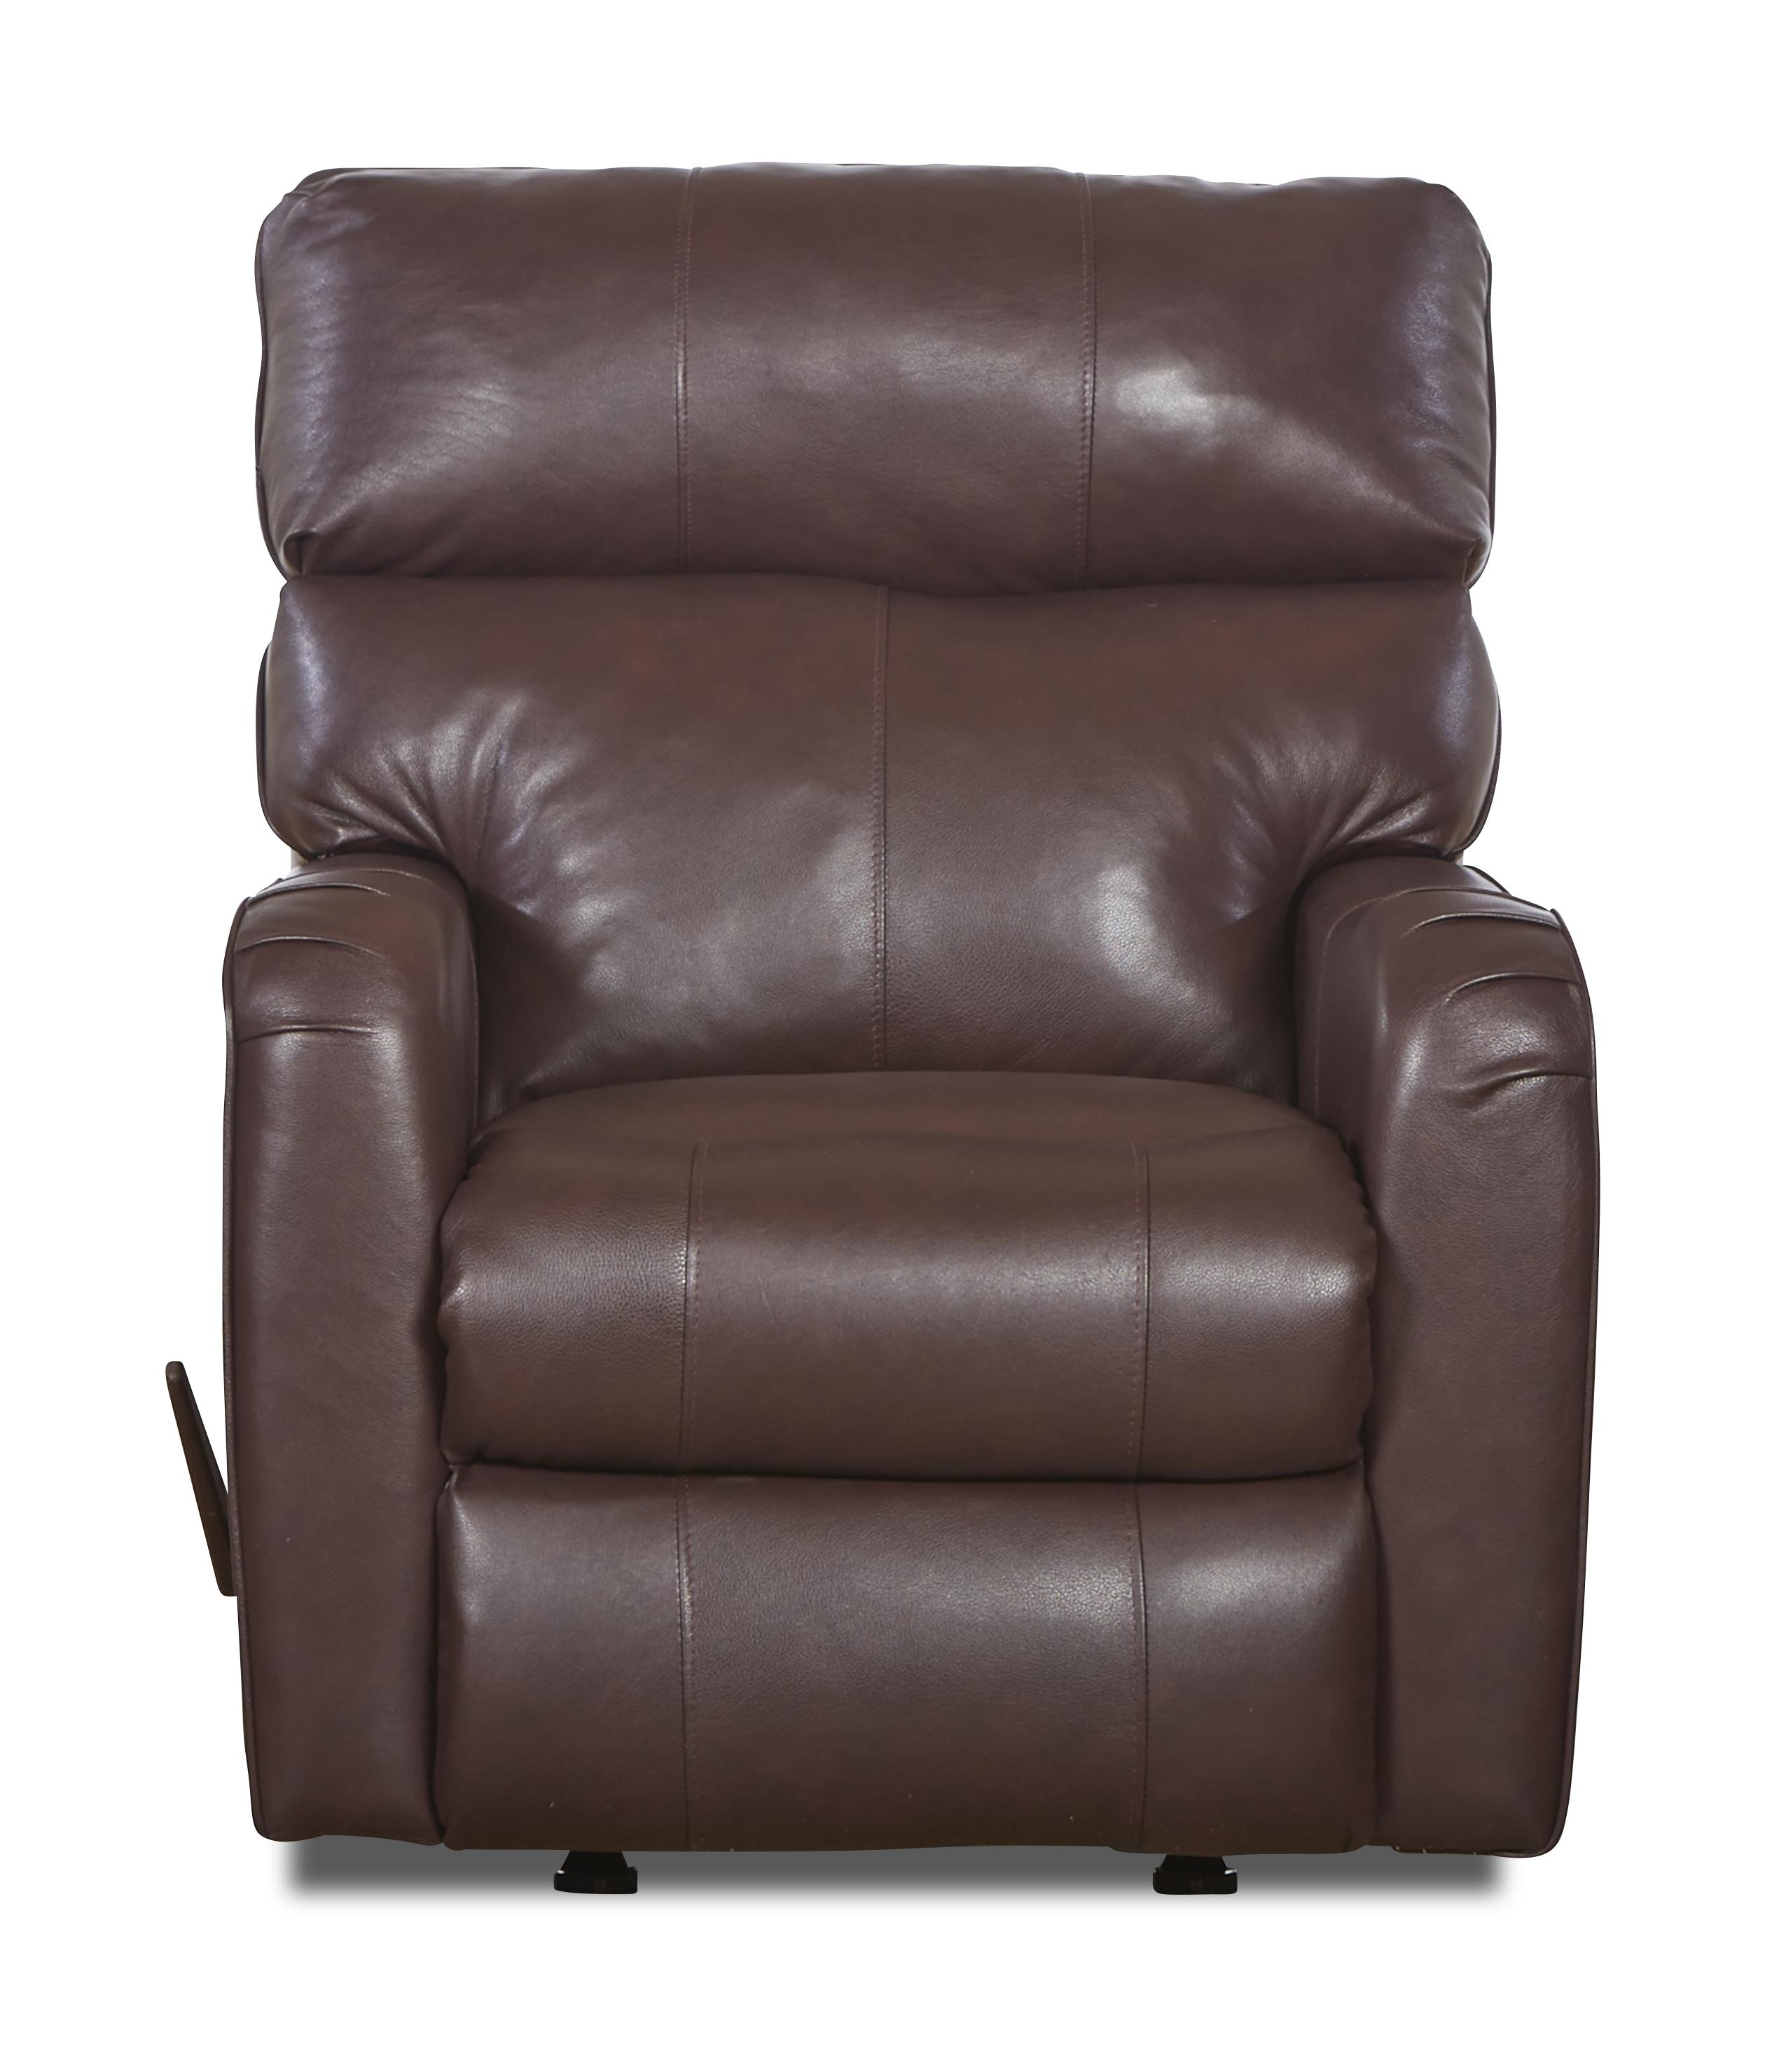 Leather Rocking Chair Axis 25803 Transitional Reclining Rocking Chair By Klaussner At Northeast Factory Direct